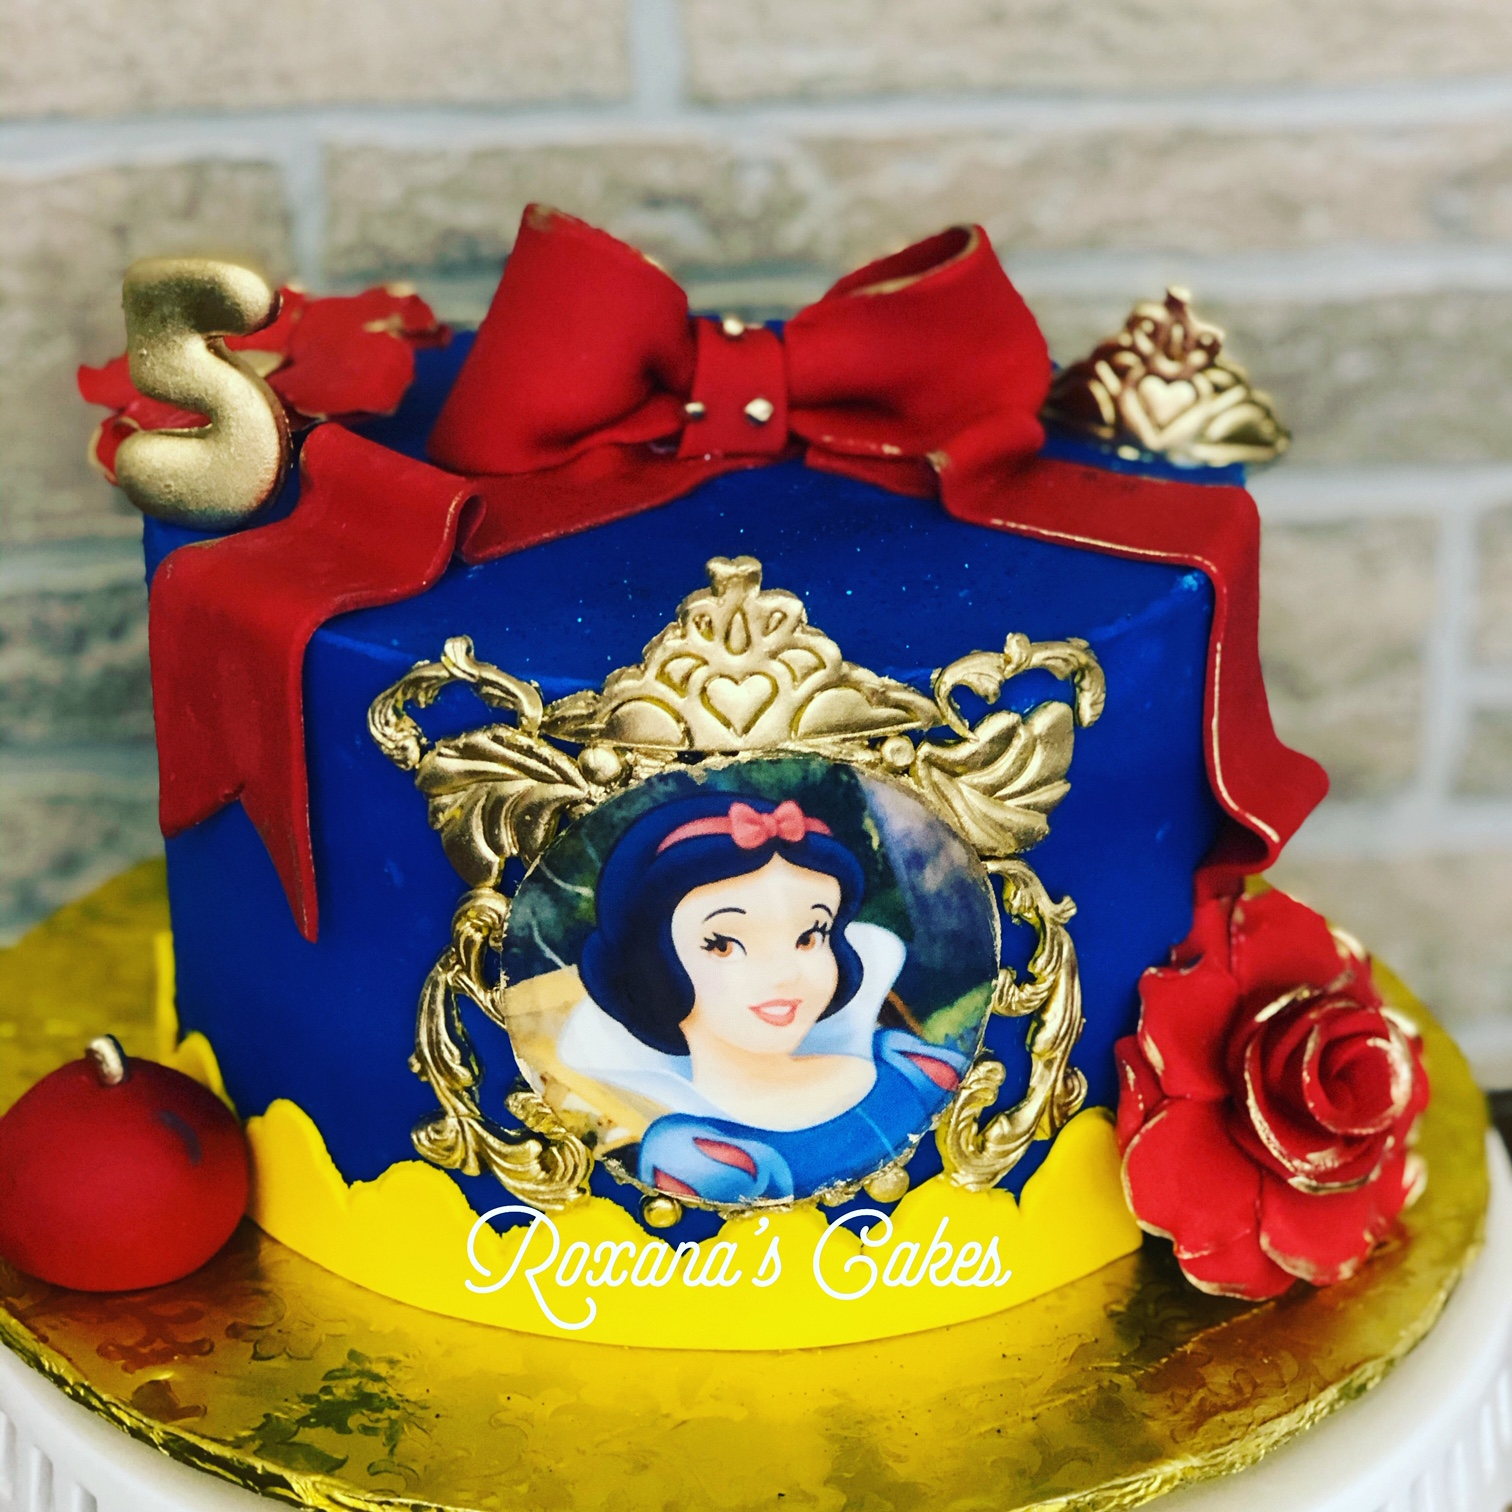 Pleasing Baking With Roxanas Cakes Snow White Birthday Cake Birthday Cards Printable Trancafe Filternl